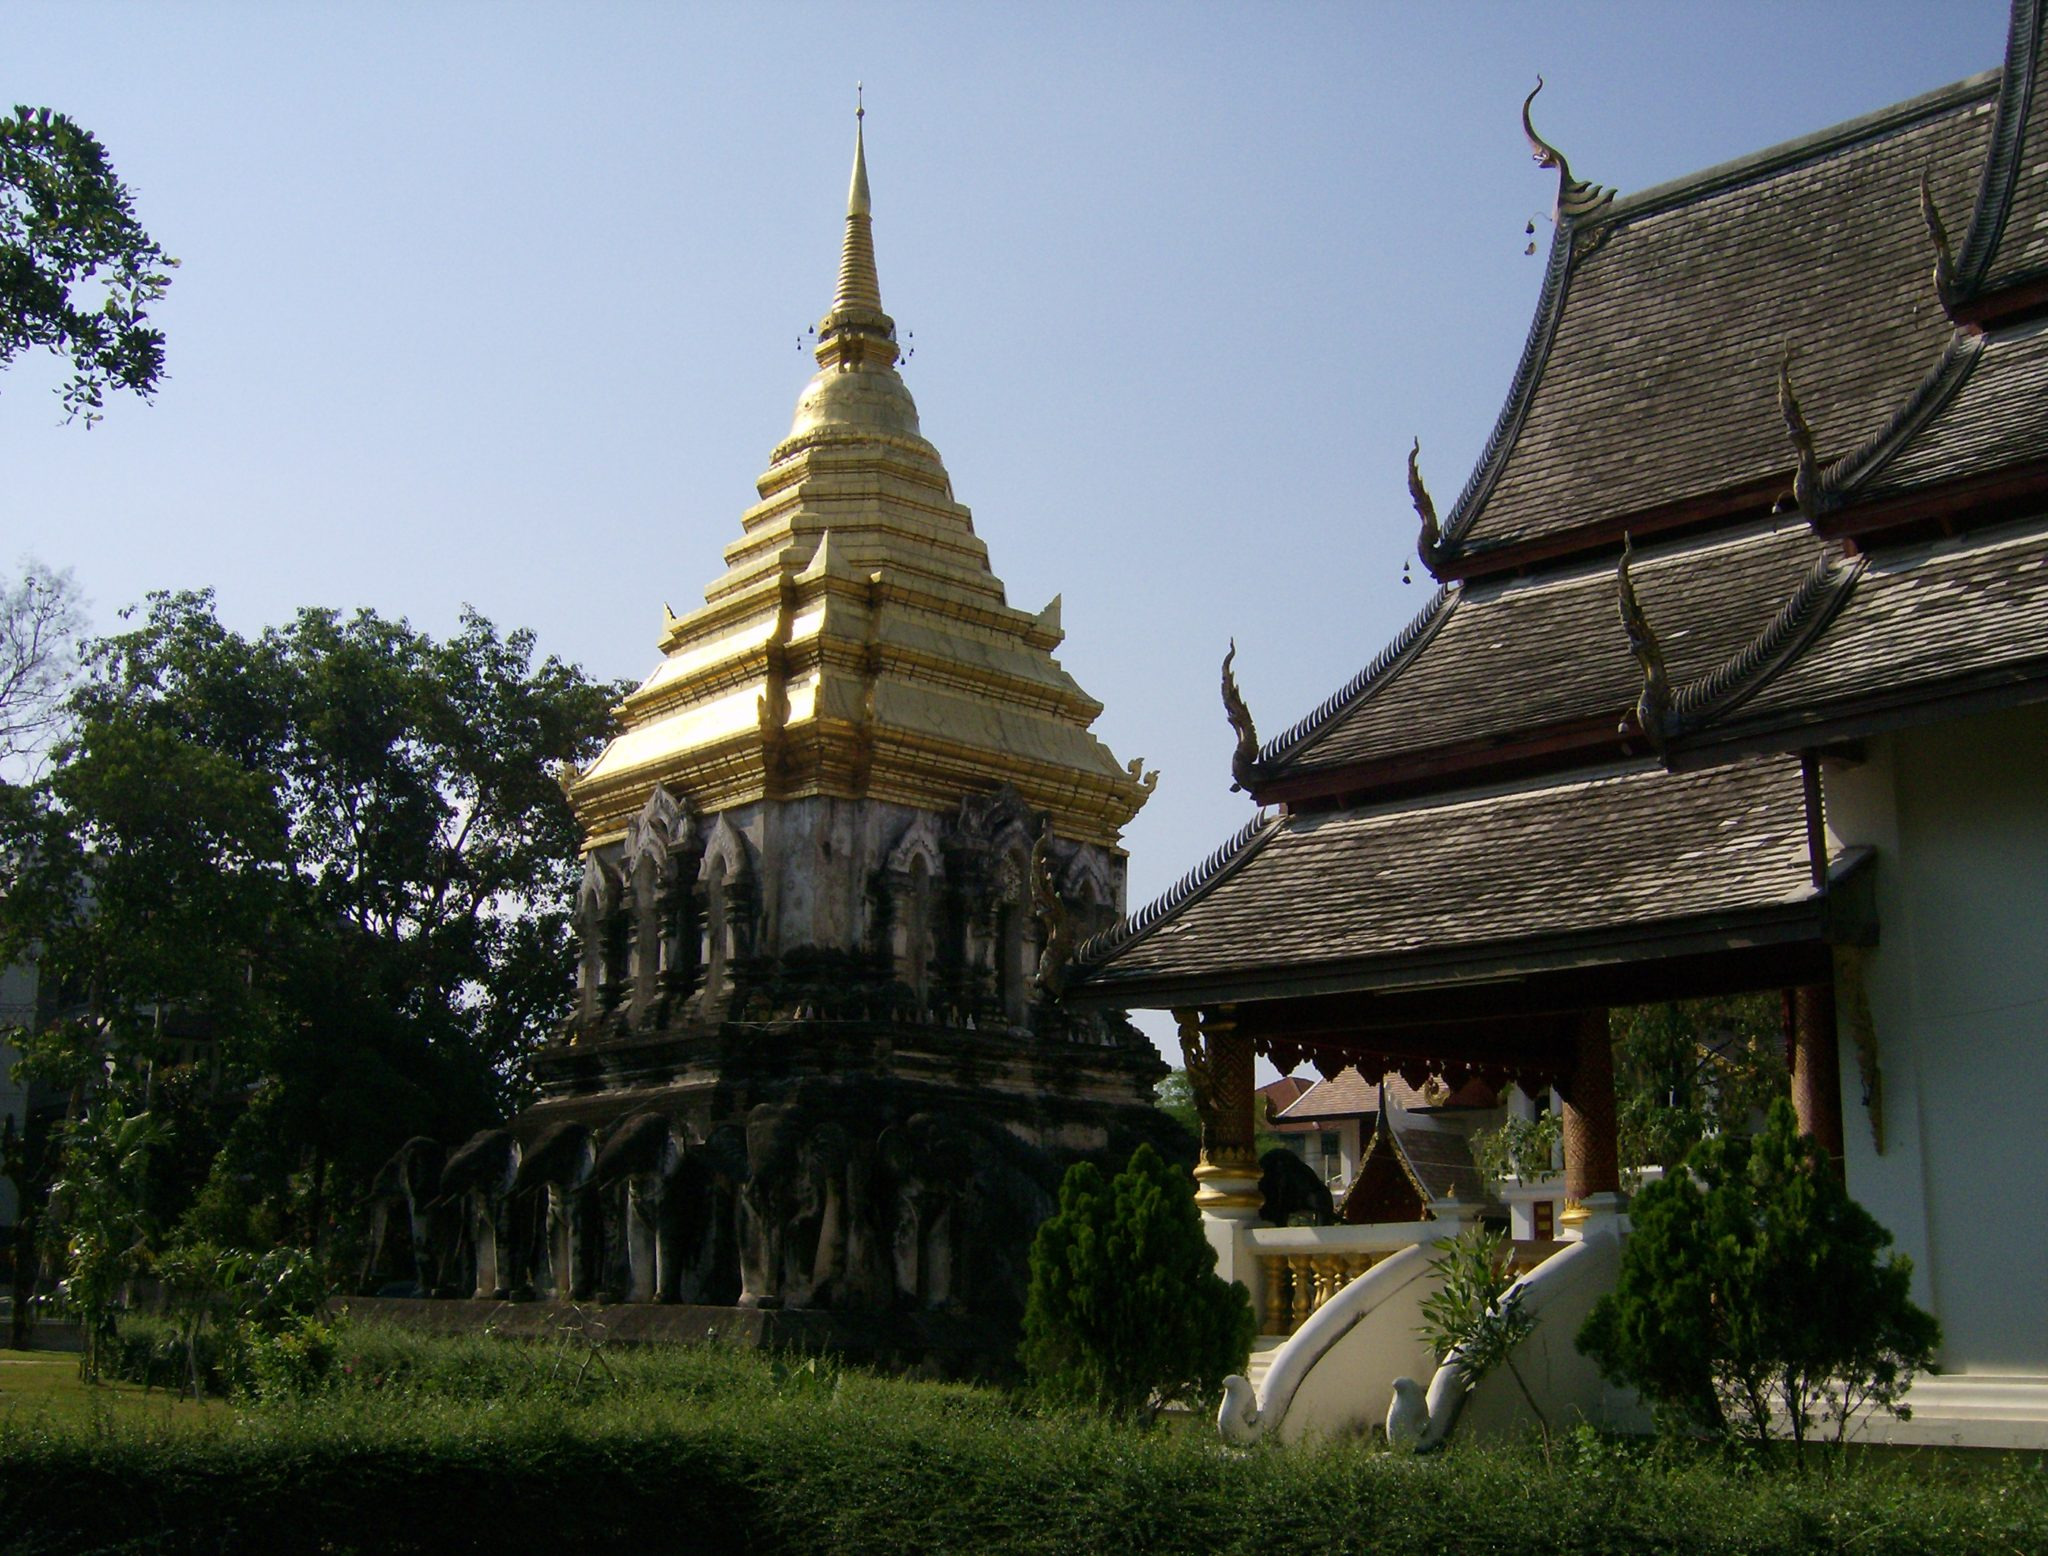 The oldest temple of Chiang Mai